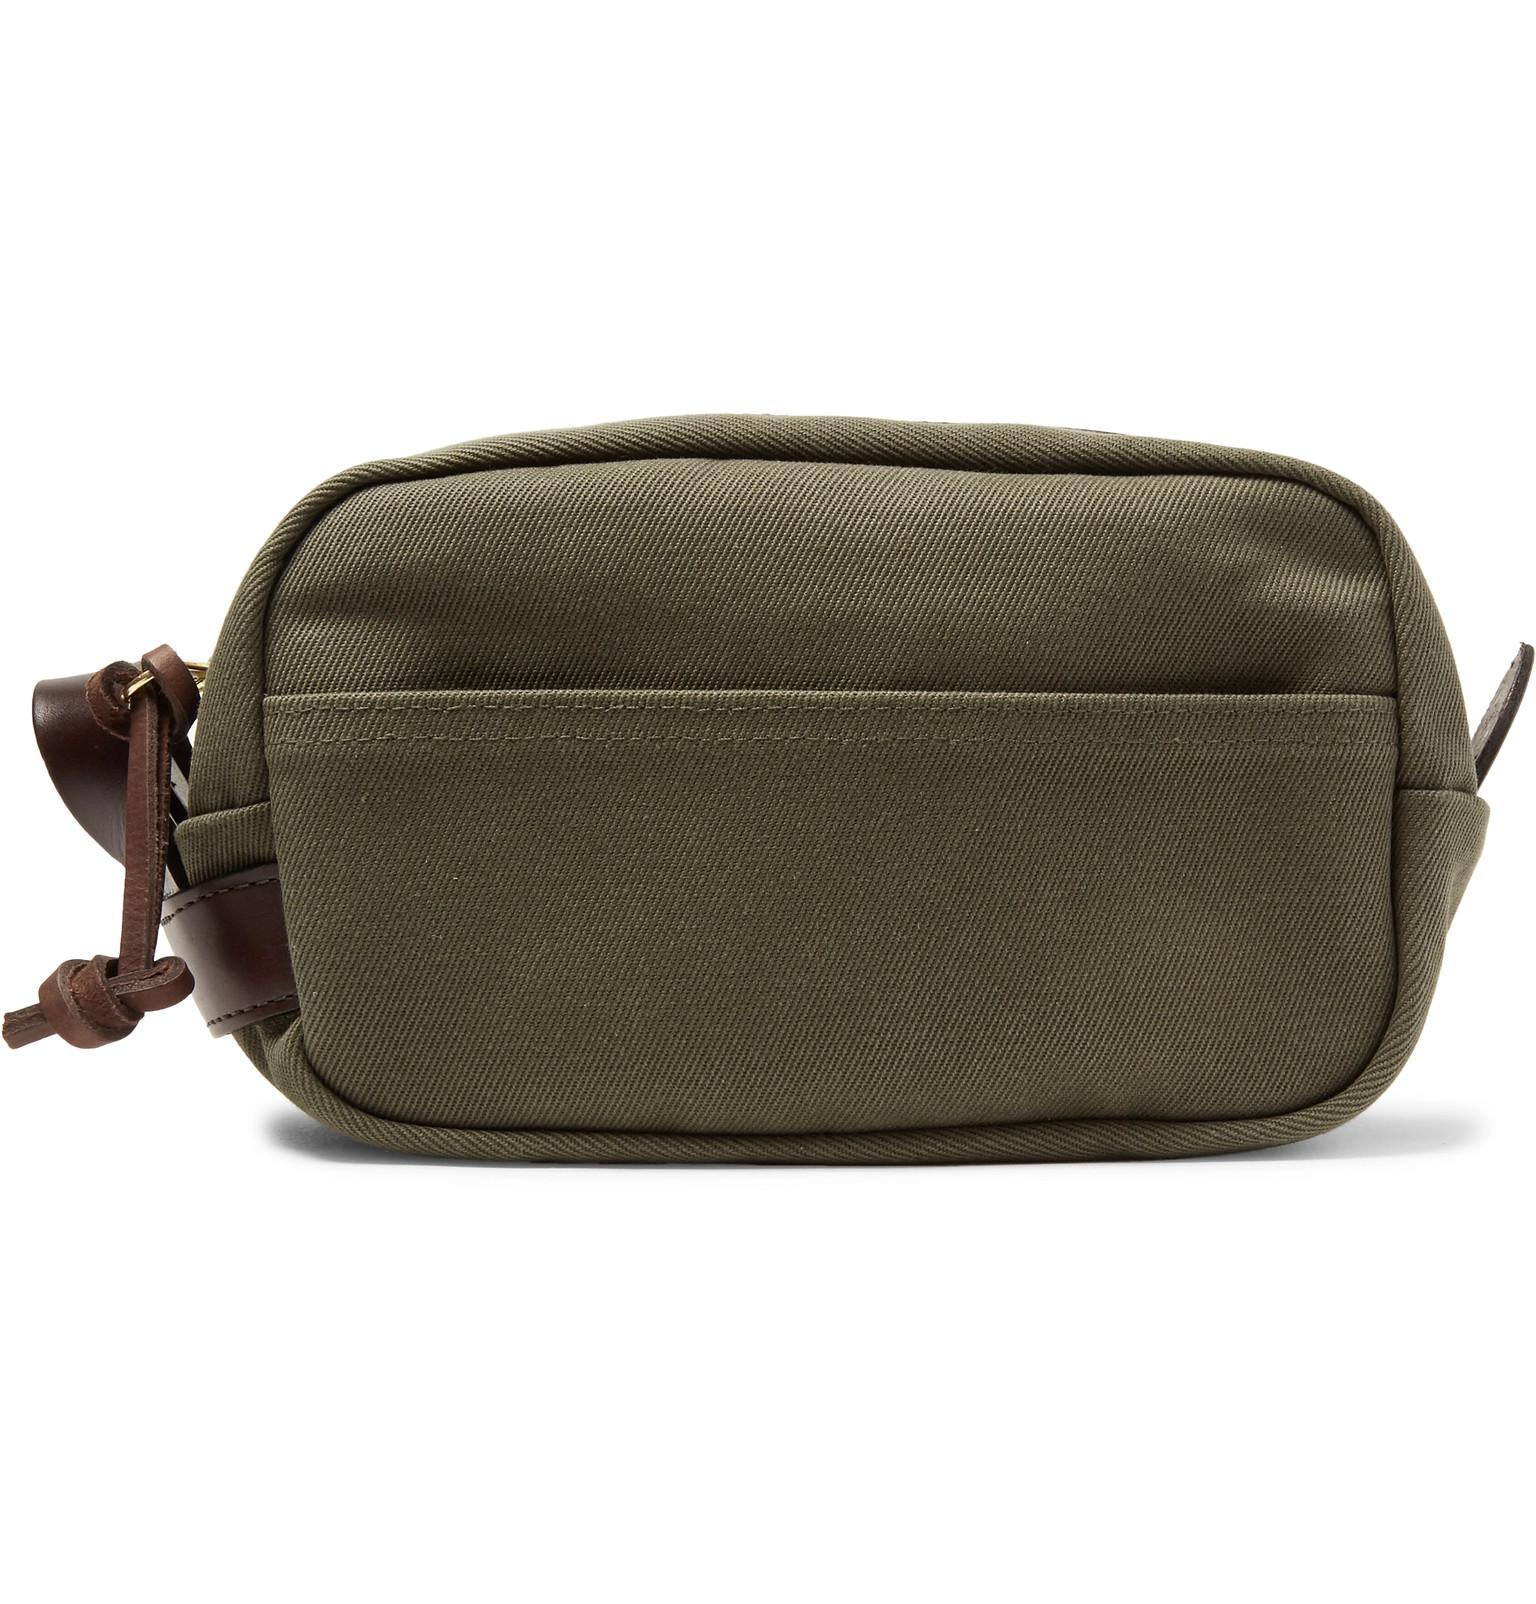 6a719a281e11 Filson Leather-trimmed Cotton-canvas Wash Bag in Green for Men ...